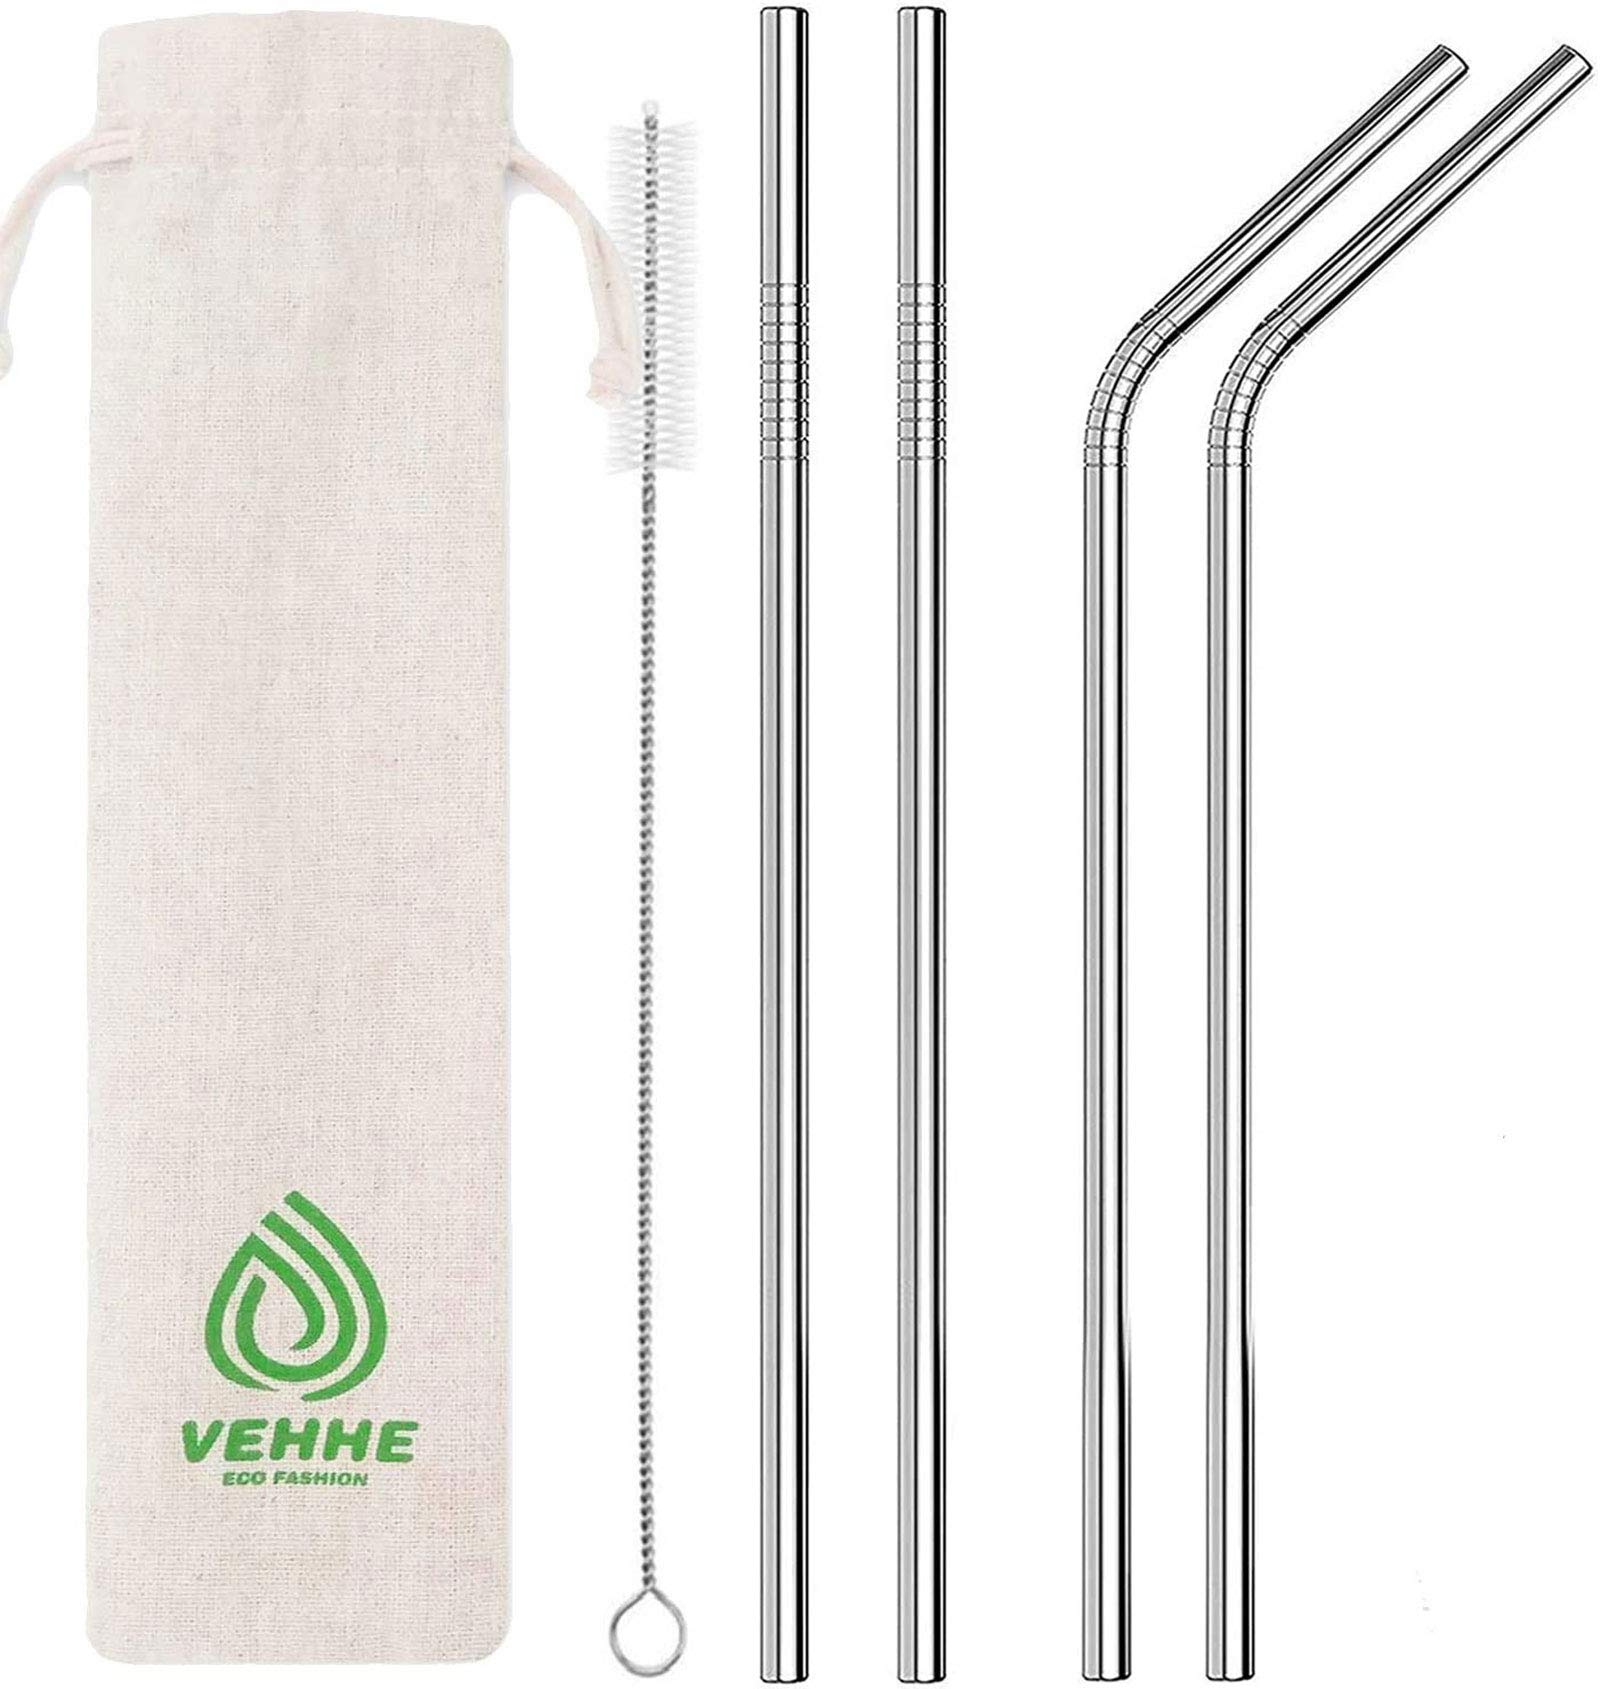 "VEHHE Metal Straw Stainless Steel Straws Drinking Straws Reusable FDA BPA - 10.5"" Ultra Long 4 + 1 - W/Cleaning Brush for 20/30 Oz for Yeti RTIC SIC Ozark Trail Tumblers (2 Straight